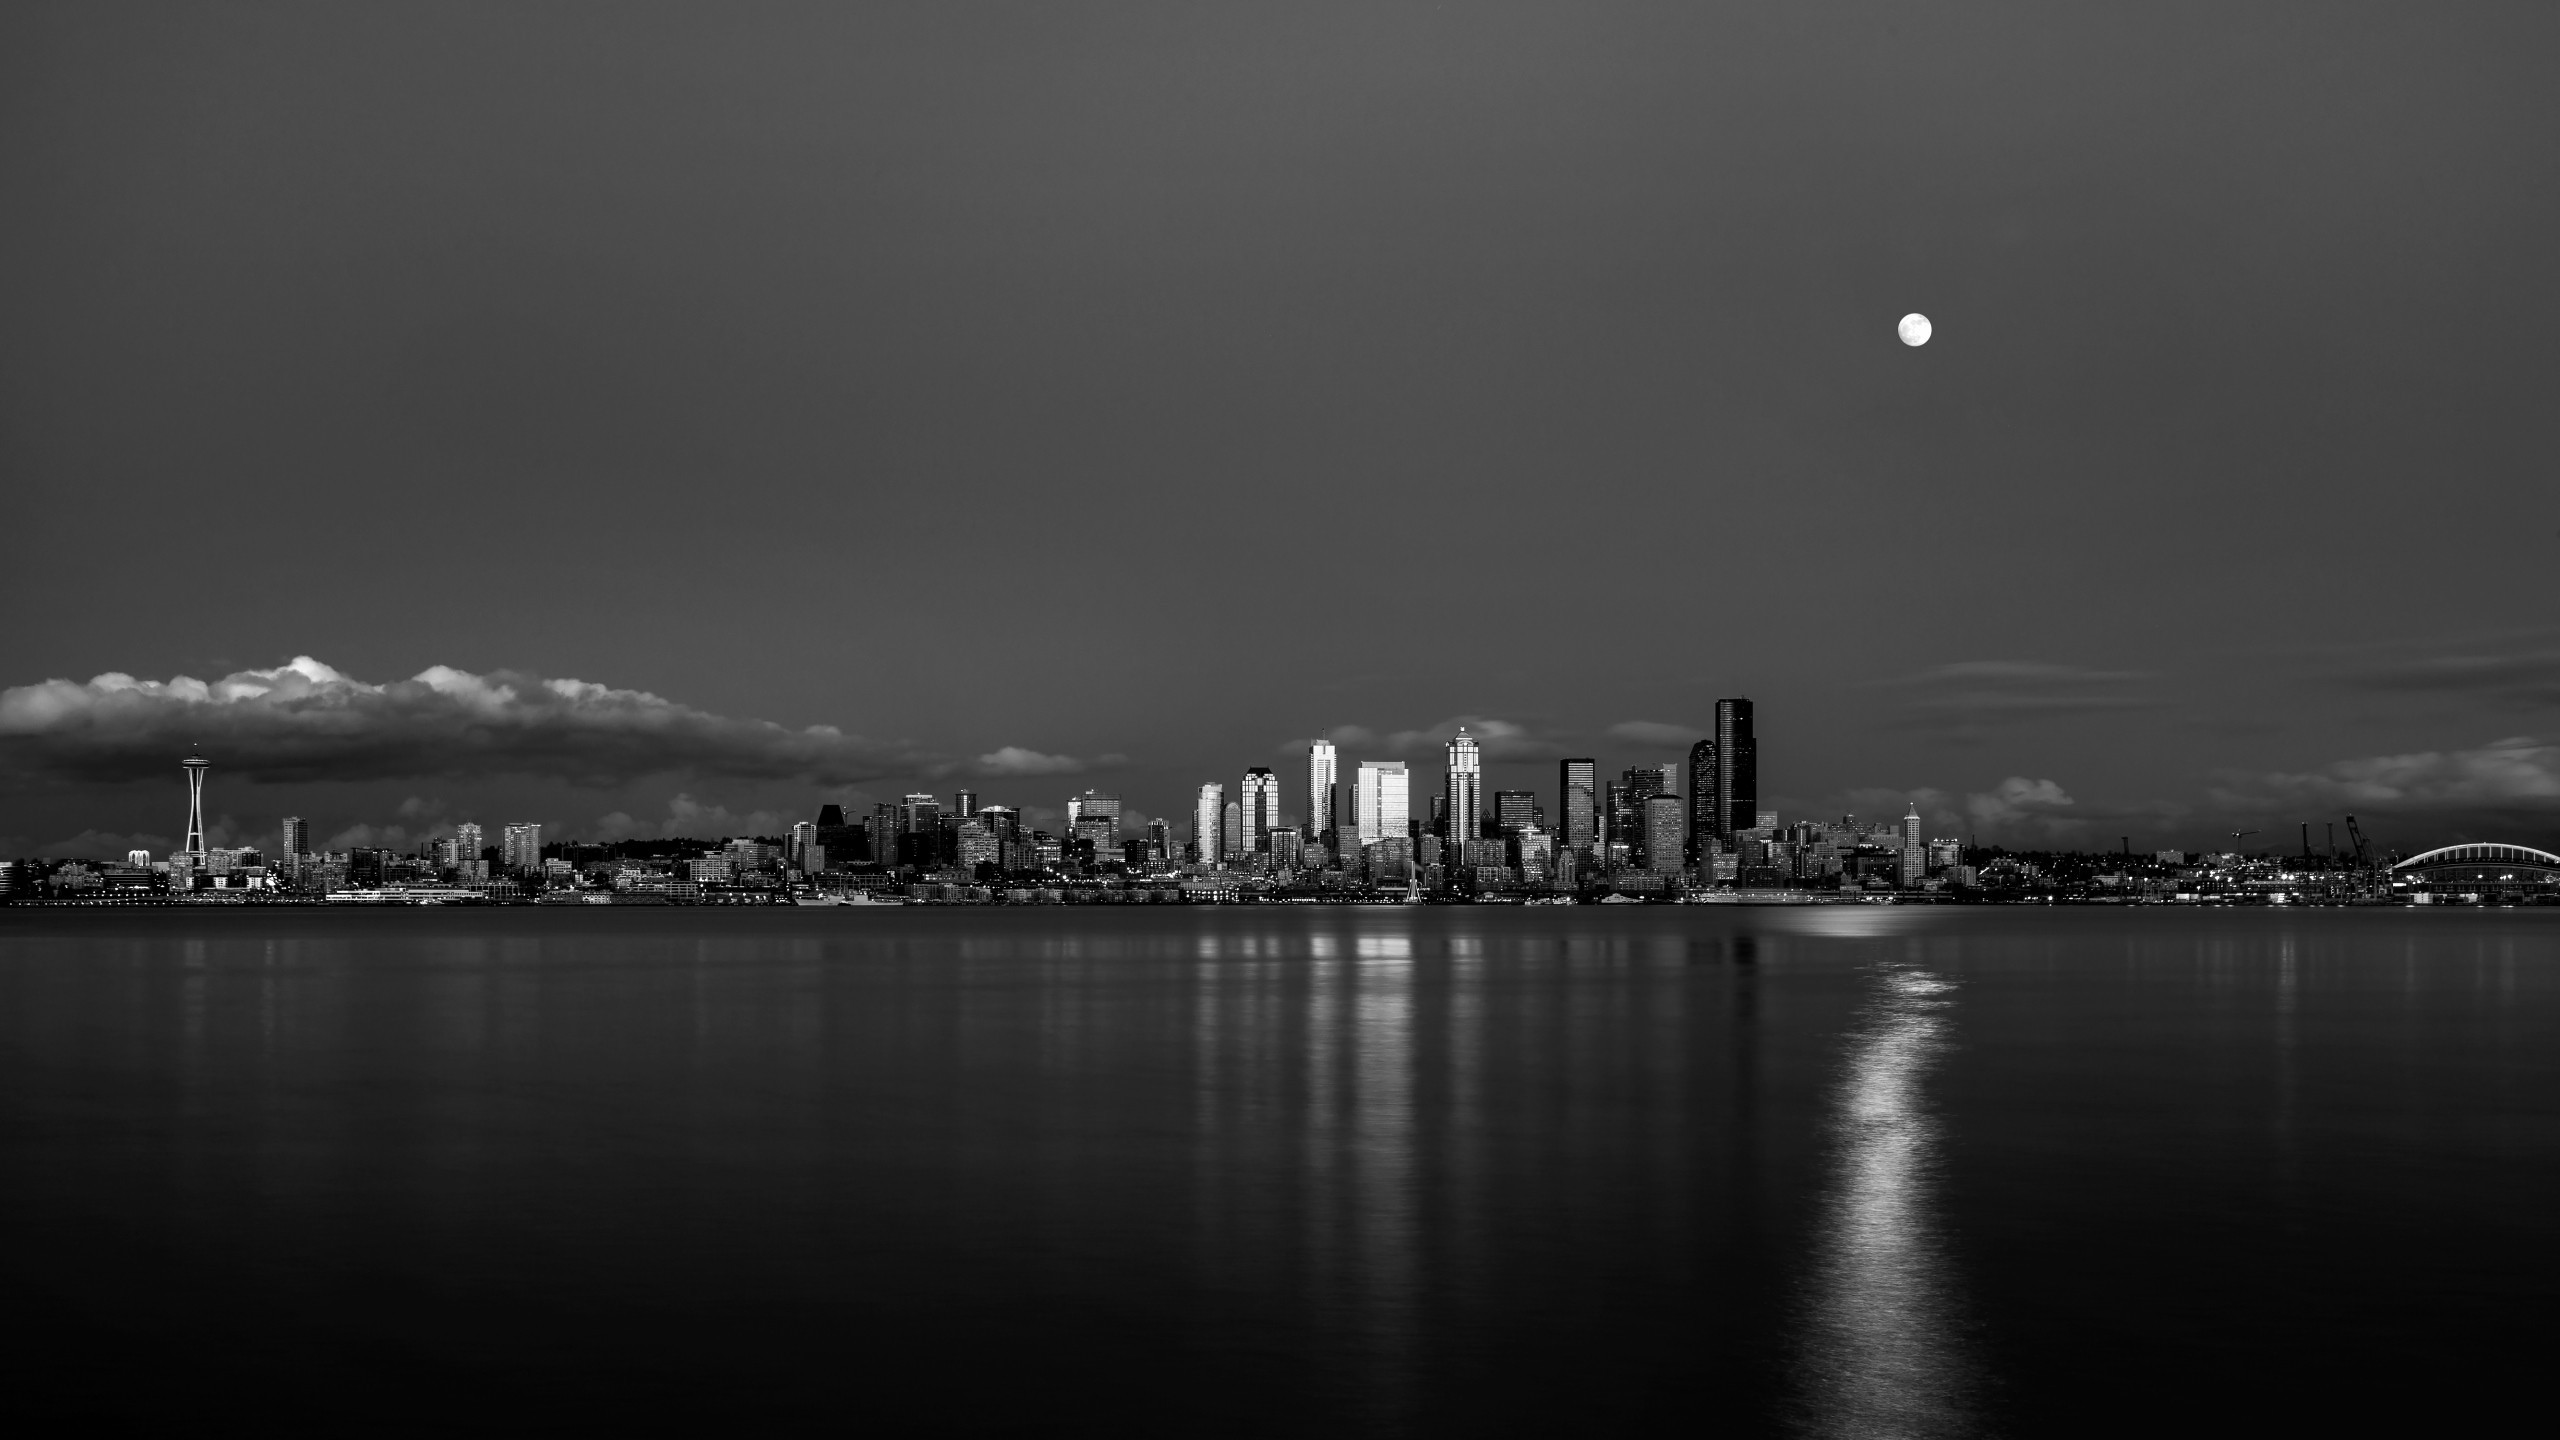 2560x1440 HD Clear. 2560 x 1440. Seattle skyline. | Cityscape Wallpaper | Pinterest |  Seattle skyline and Photography